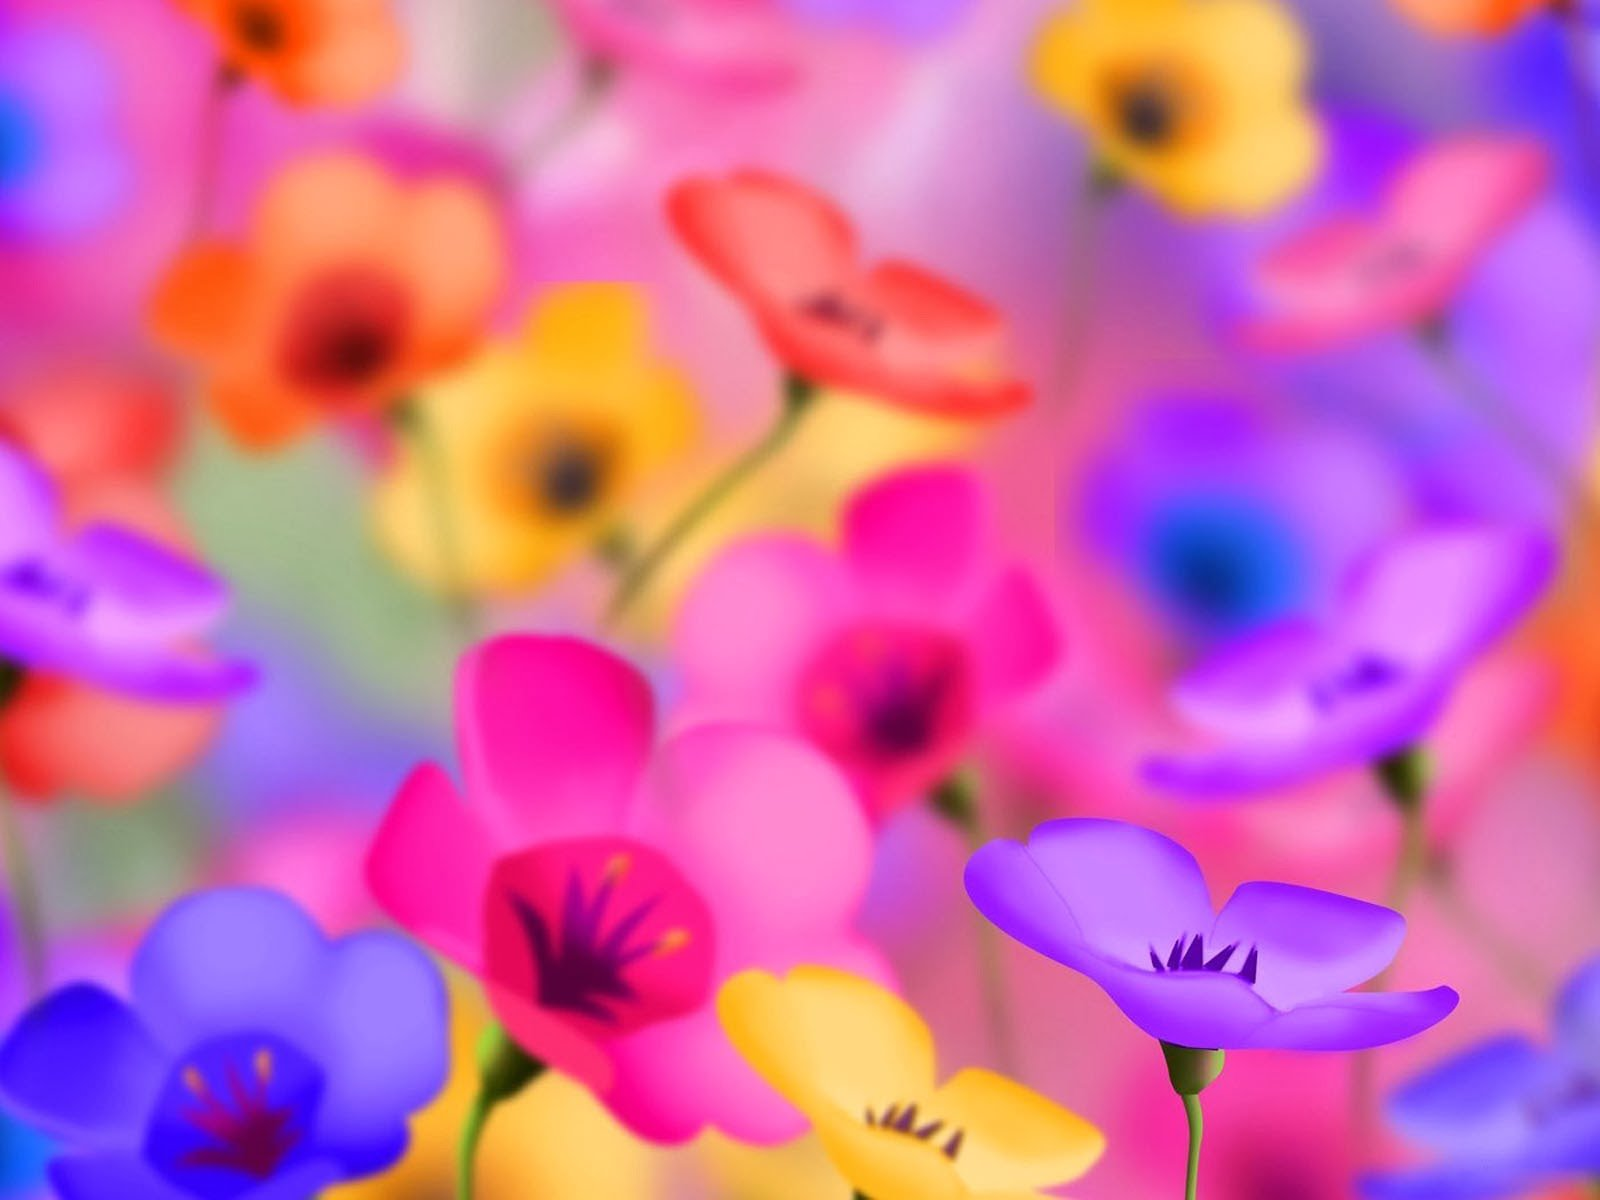 50 Beautiful Flower Wallpaper Images For Download 1600x1200